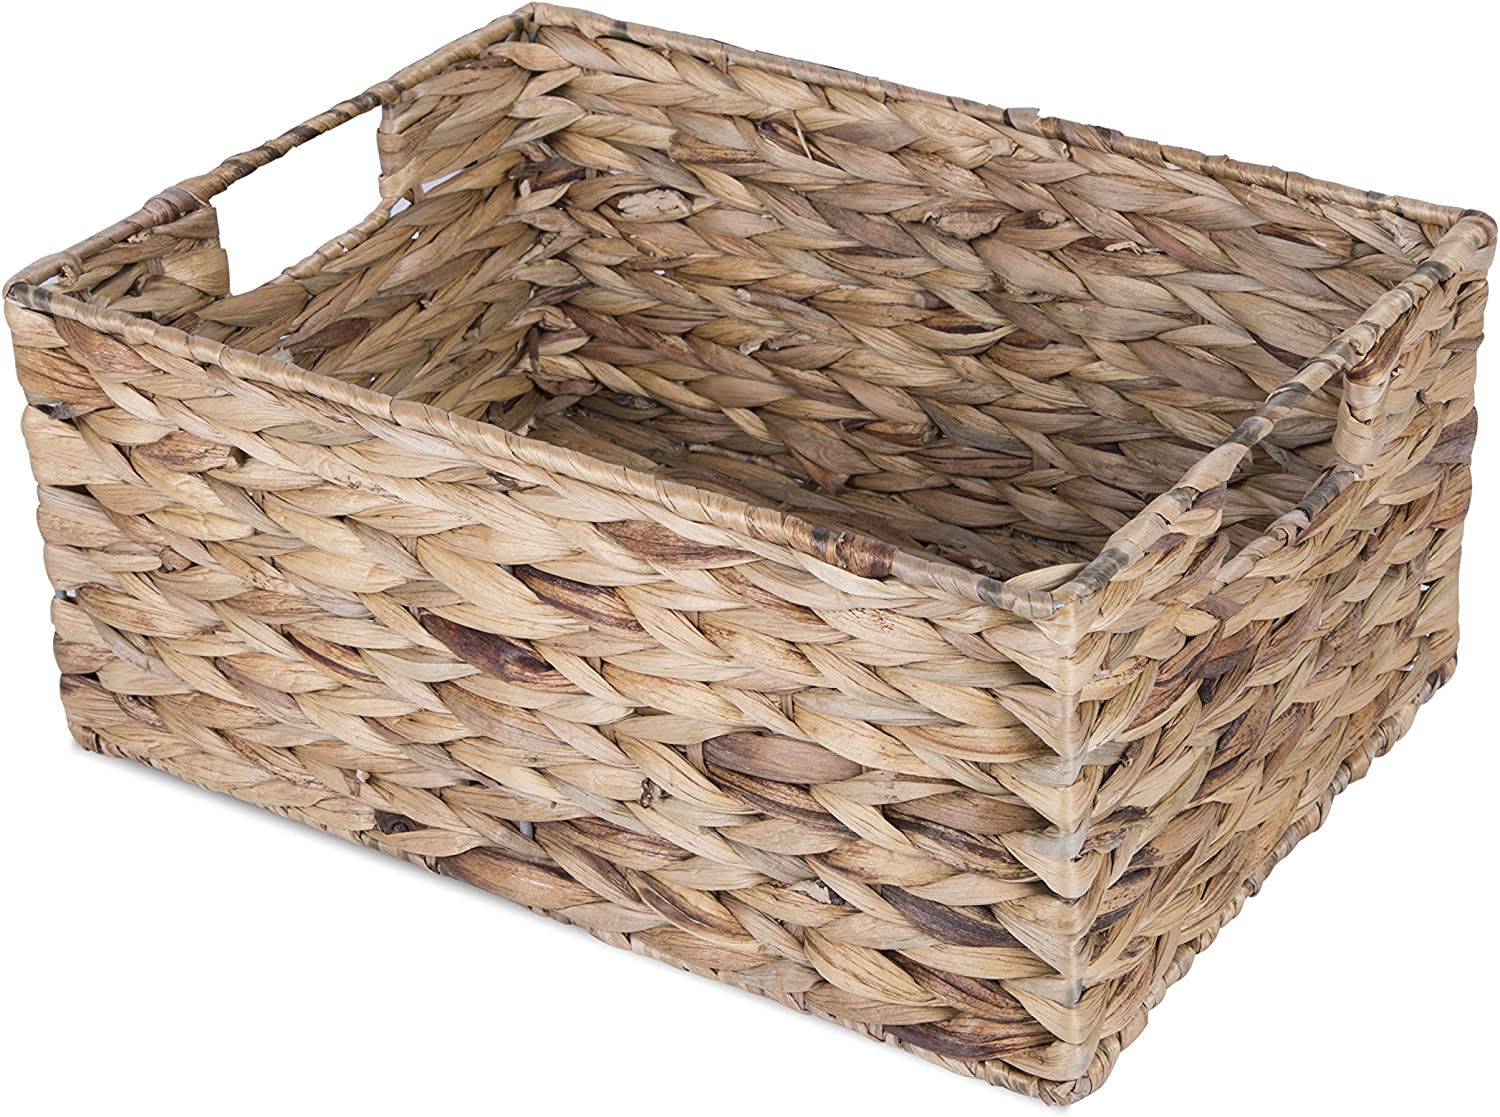 BASIC HOUSE Water Hyacinth Wicker Storage Collection Display Hamper Basket (Medium)